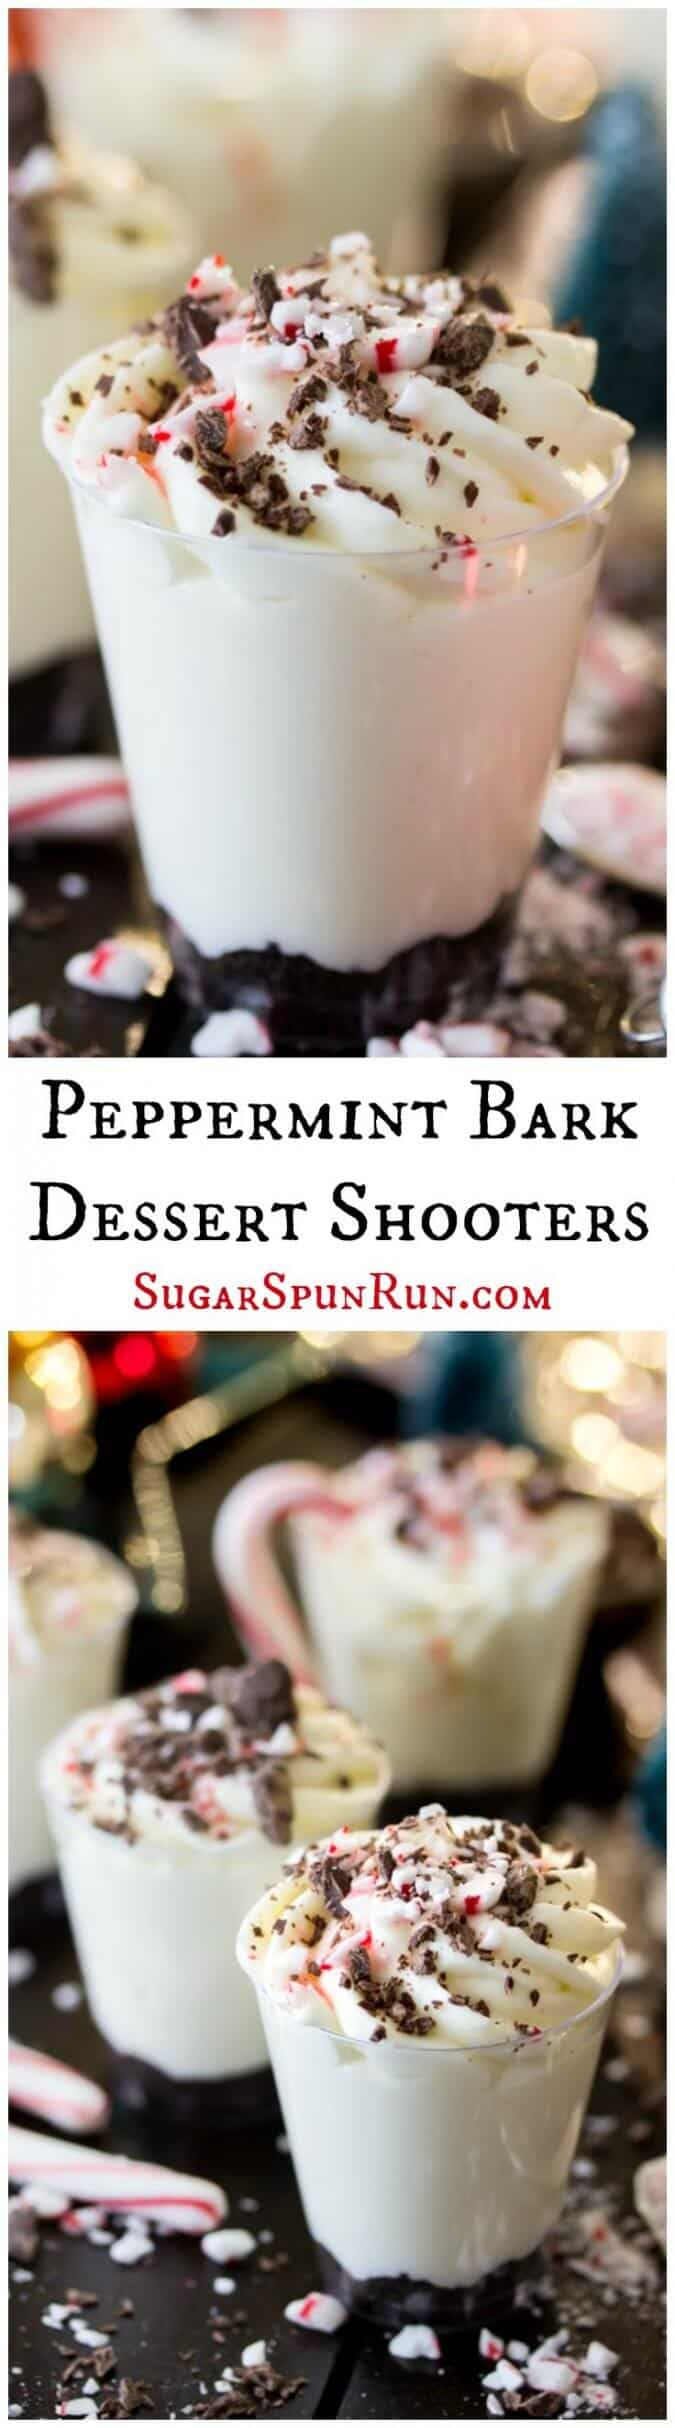 Peppermint Bark Dessert Shooters || Sugar Spun Run